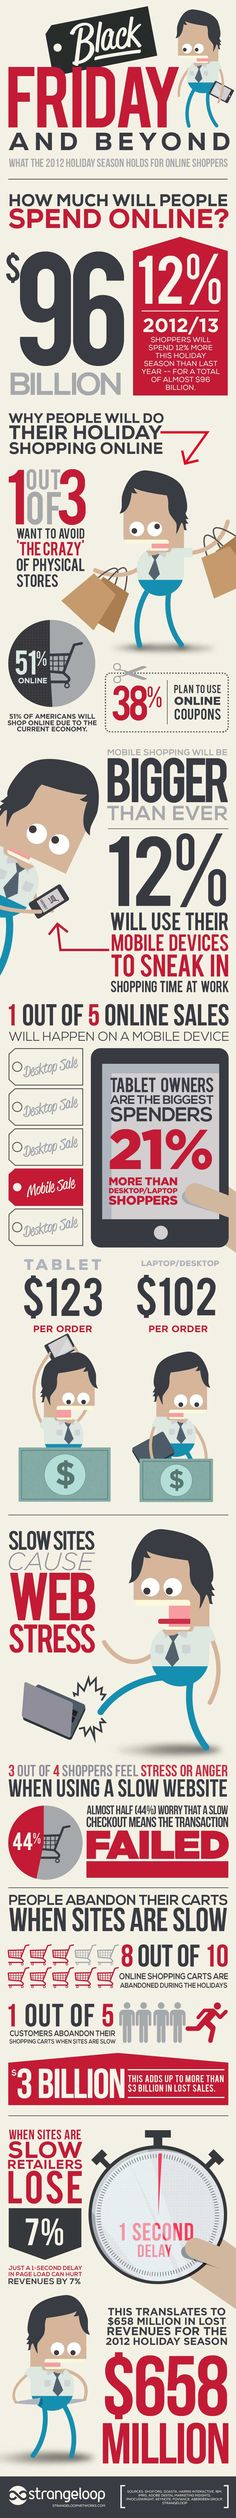 Black Friday and Beyond: What the 2012 holiday season holds for online shoppers